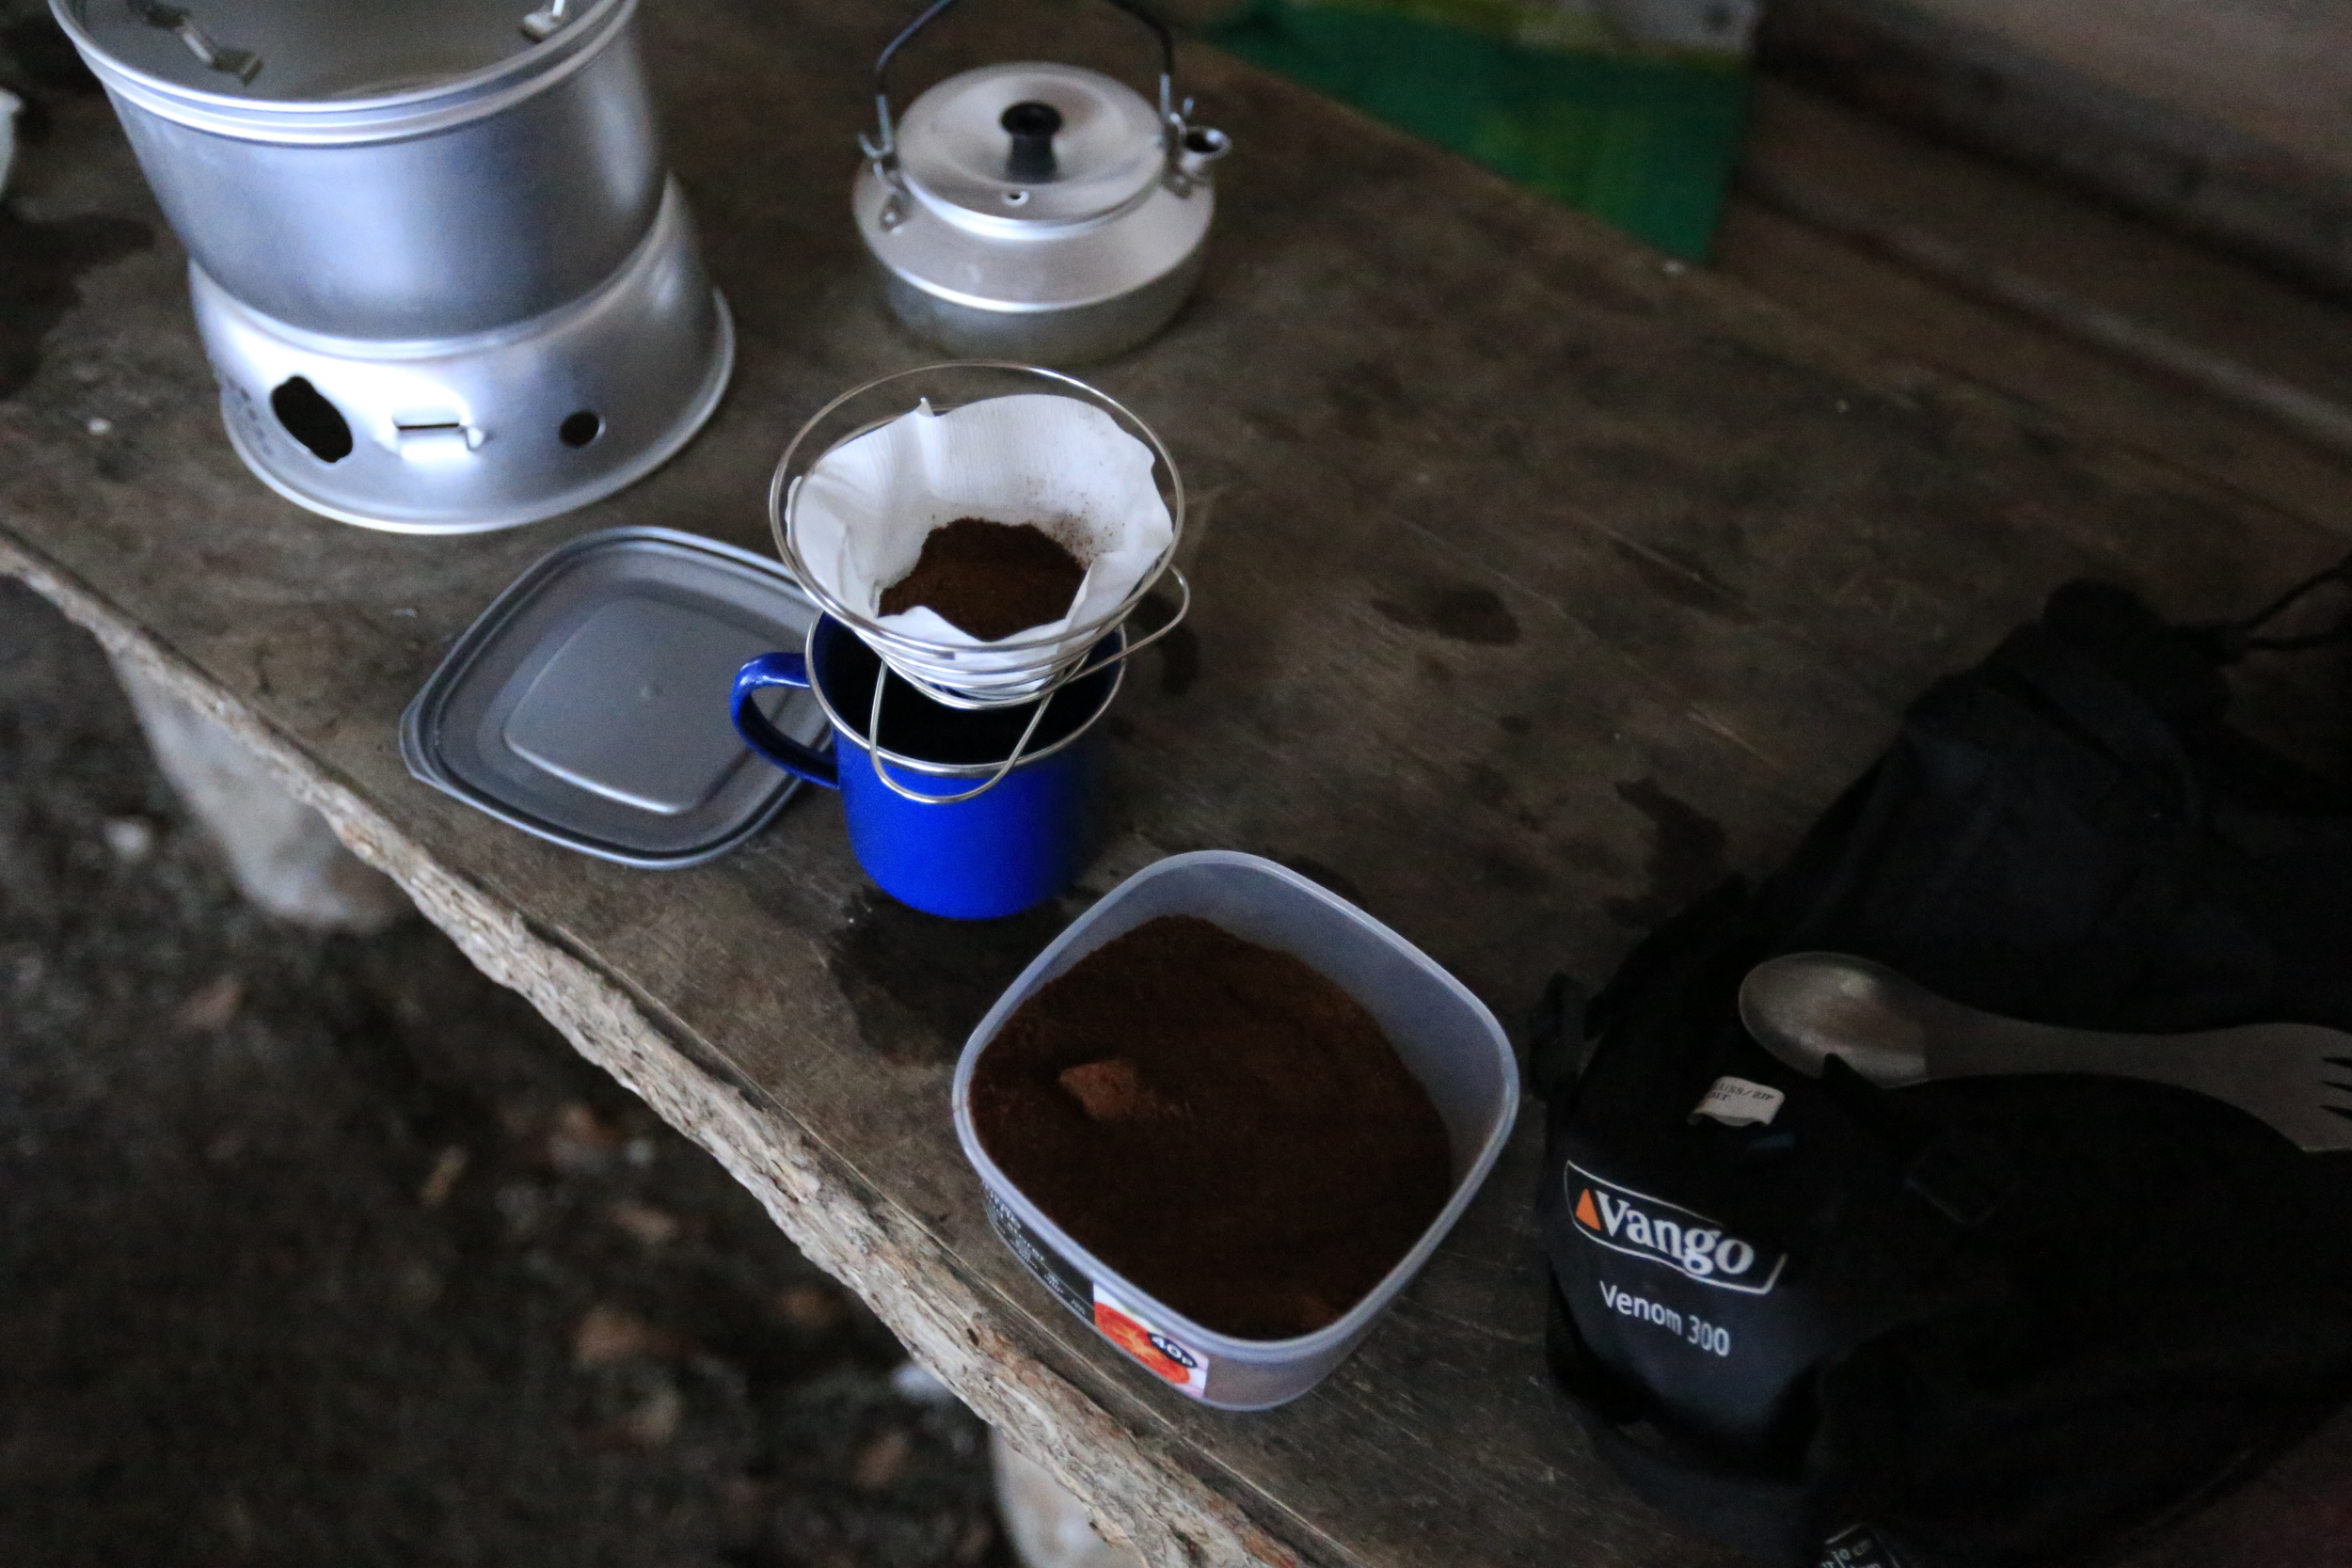 Making good use of the super compact   Soto Helix Coffee Maker  . This super lightweight cone is perfect for bicycle touring and has to be one of the best options for minimalist Bikepackers who can't live without their coffee.